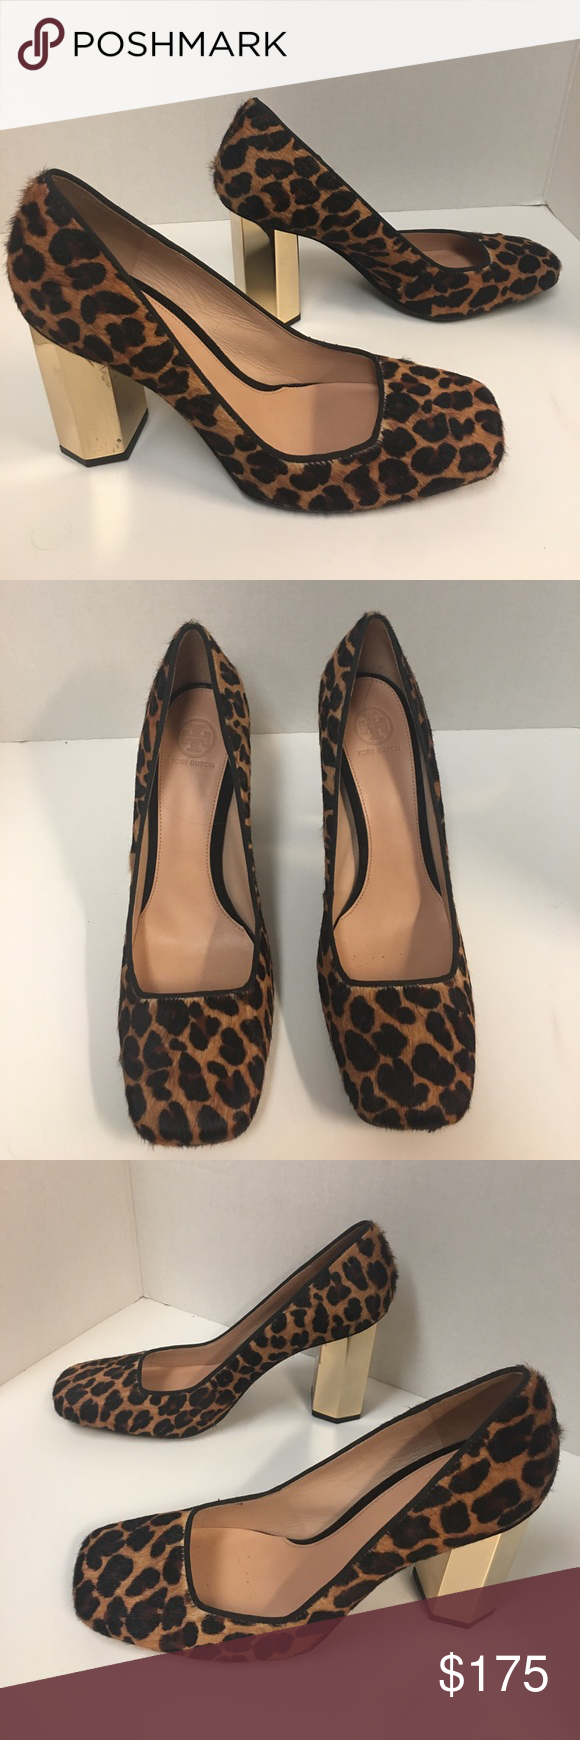 New Tory Burch regina calf hair animal print pumps